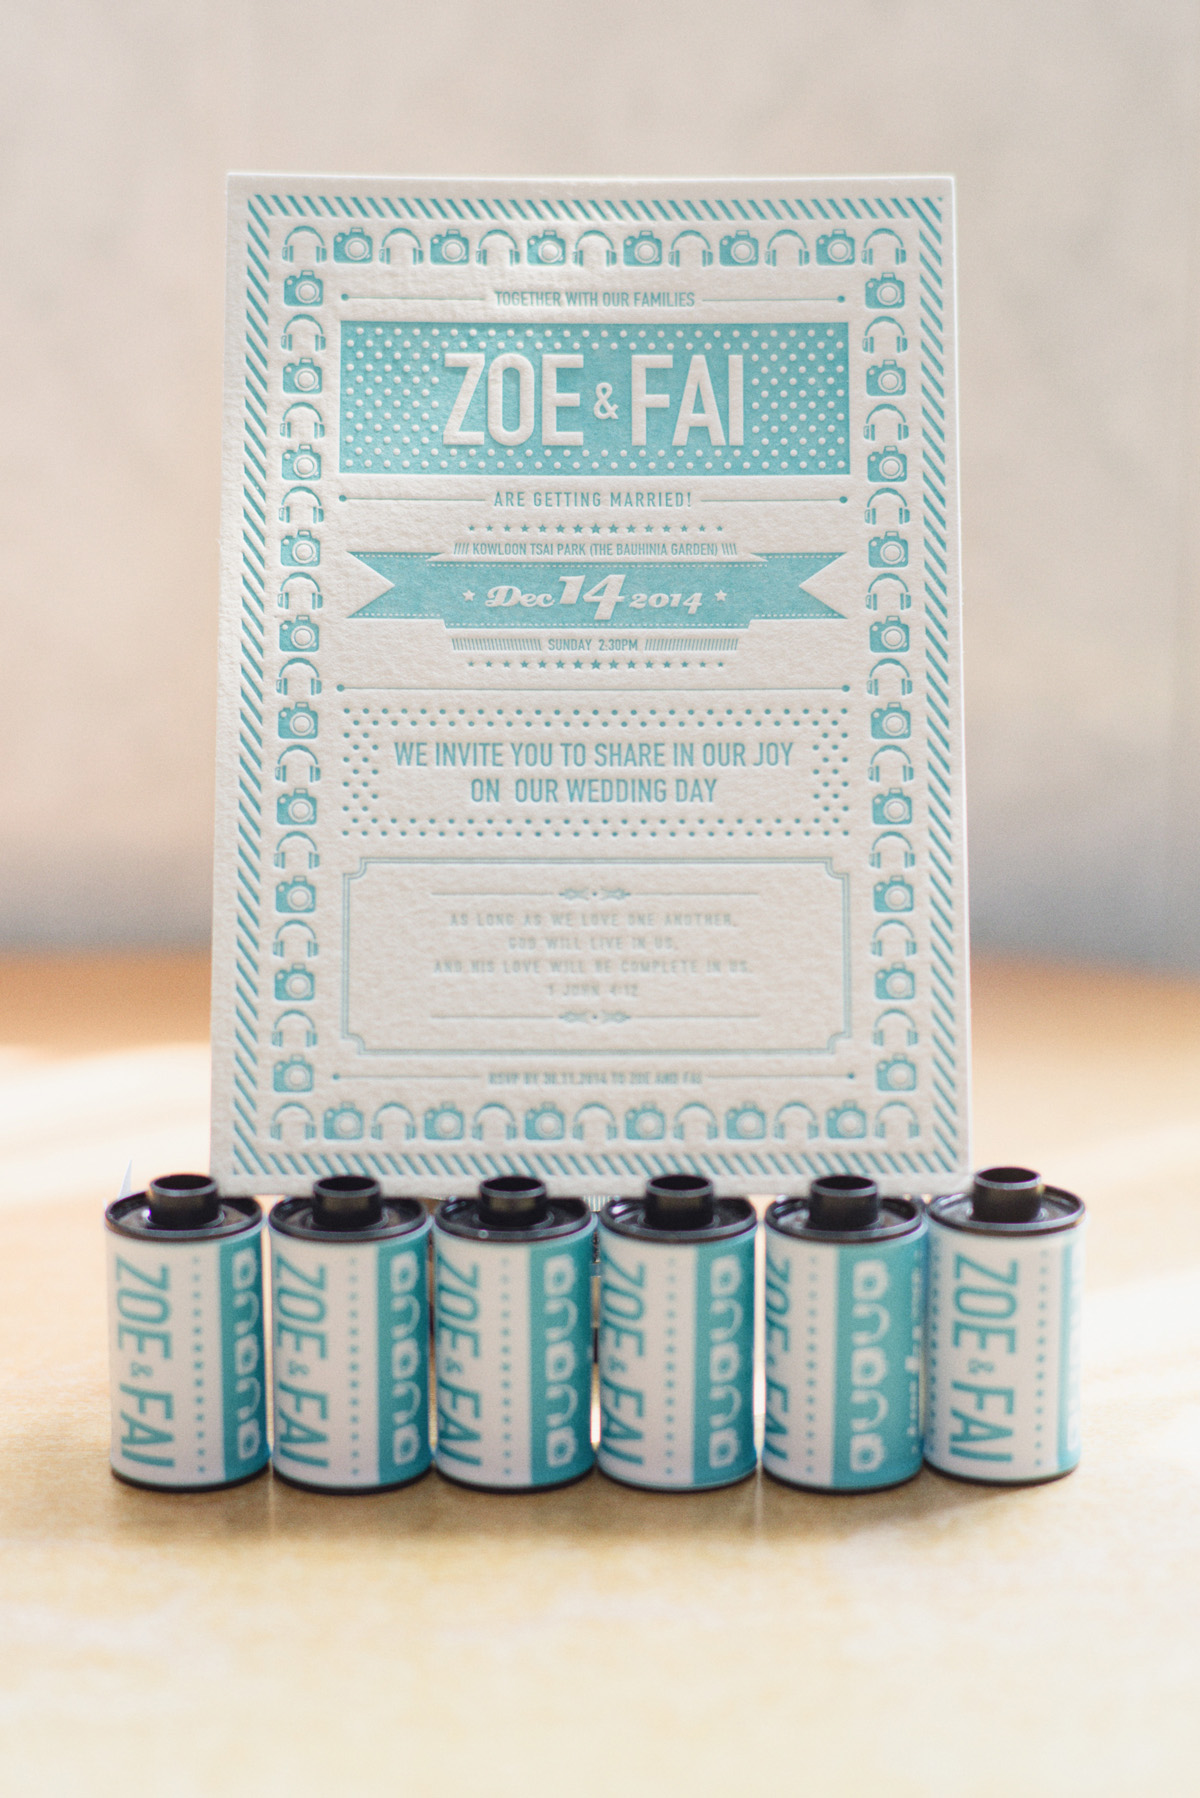 Zoe & Fai - Wedding Invitation Design idea